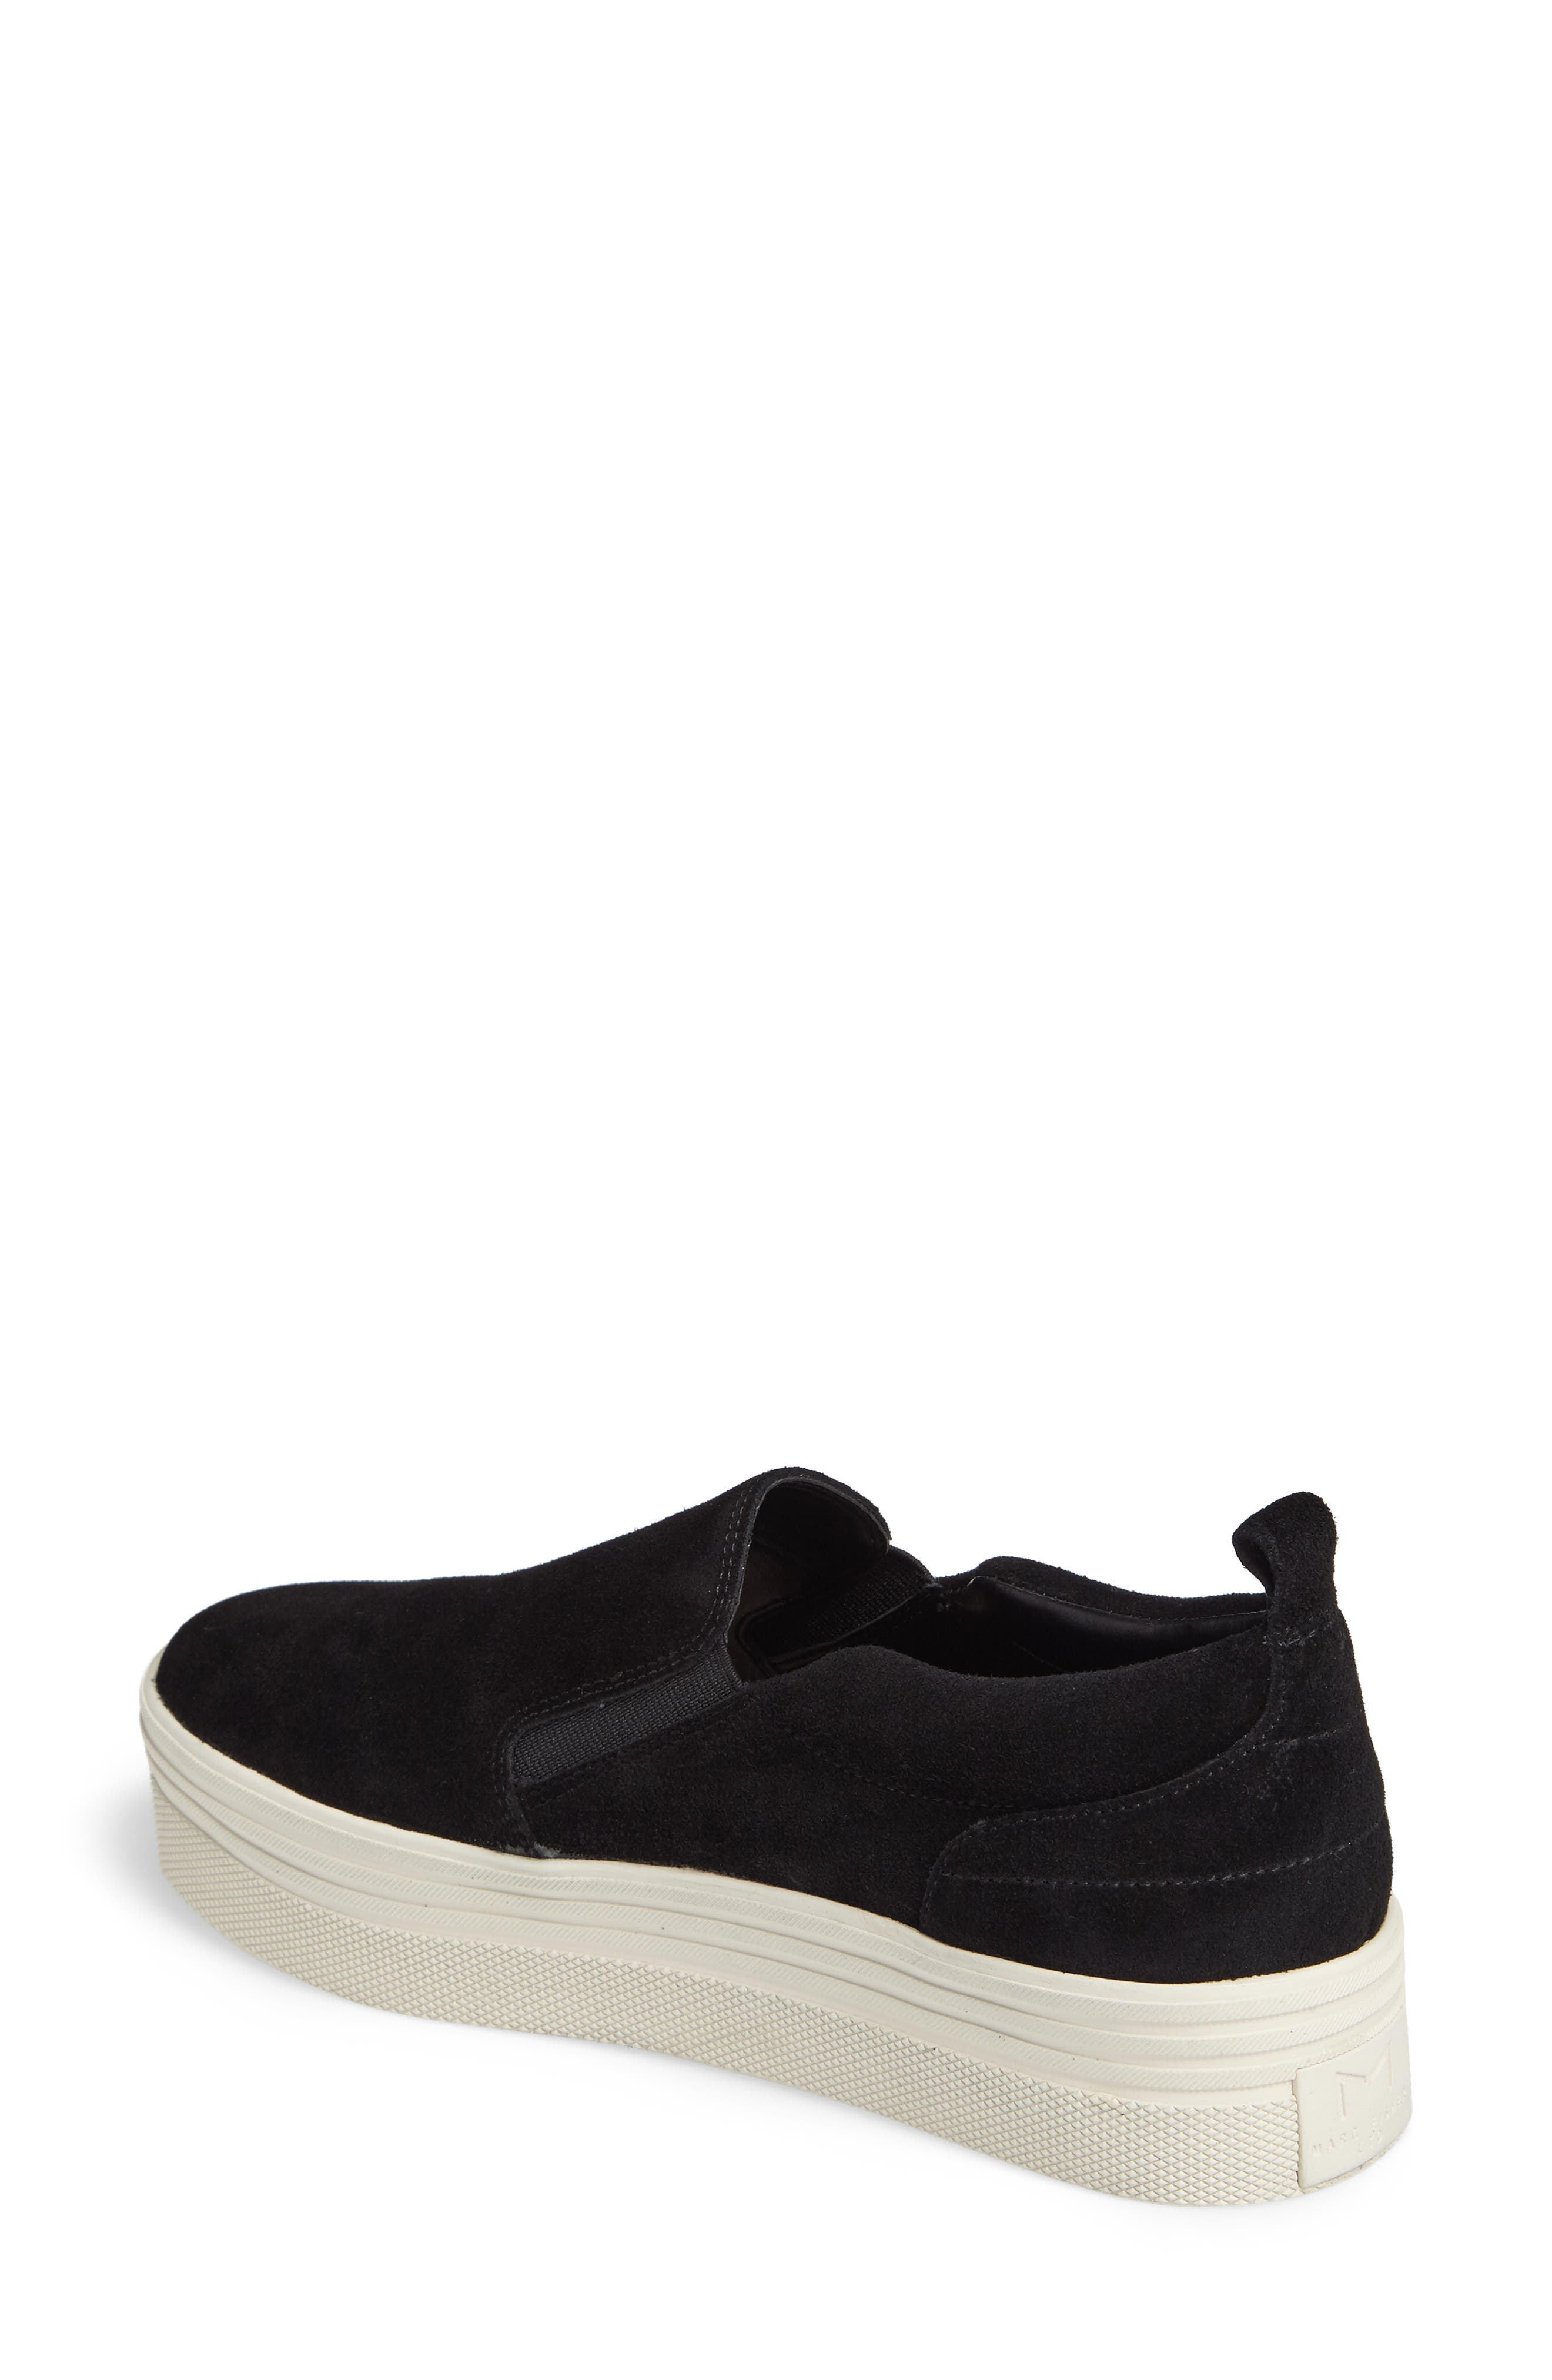 Elise Platform Sneaker,                             Alternate thumbnail 2, color,                             002